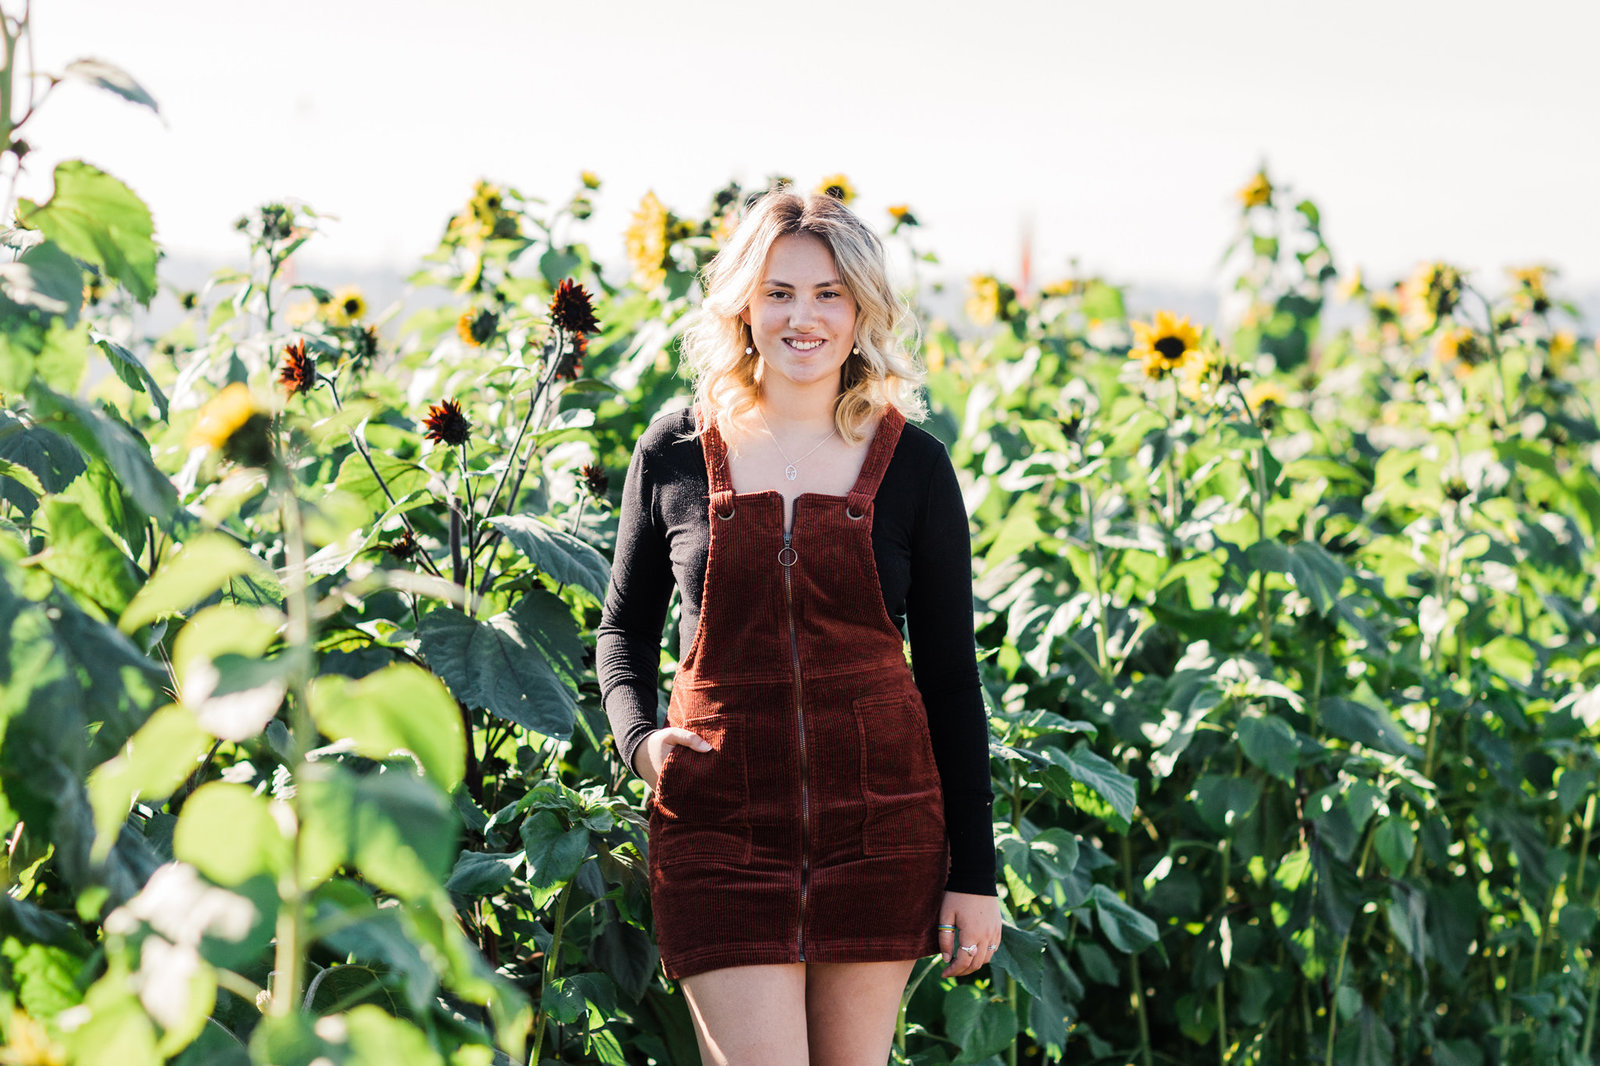 019-snohomish-senior-photos-sunflowers-amy-galbraith-hannah